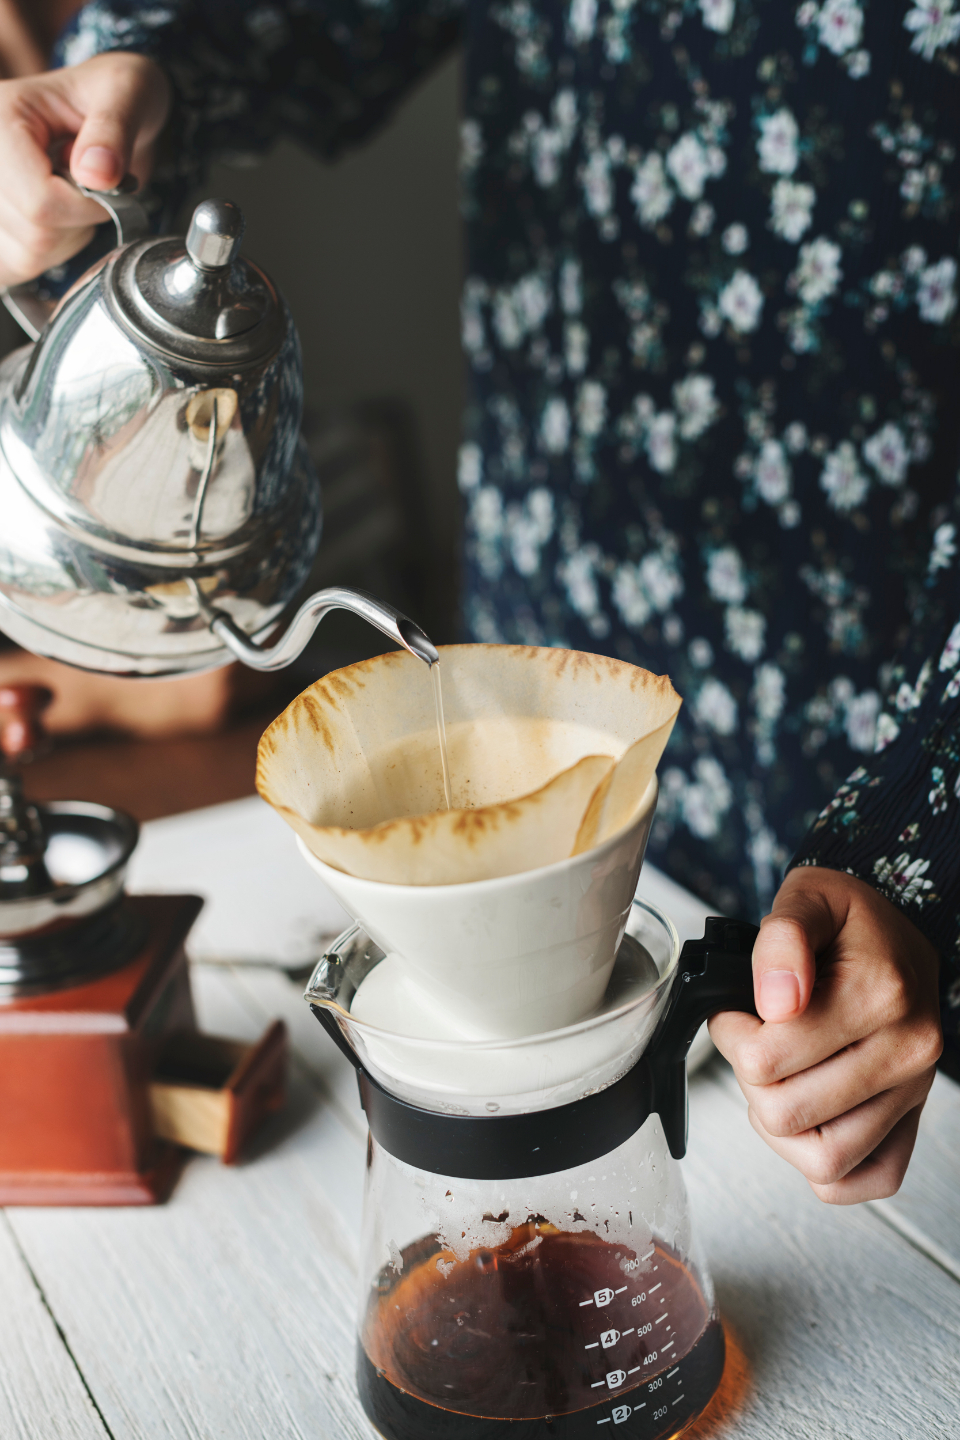 aroma barista beans beverage break brew brewing cafe caffeine career classic coffee coffee beans culture cup drink drip drip coffee enjoying filter fresh grinder hand hobby home house interest kettle learn lifesty